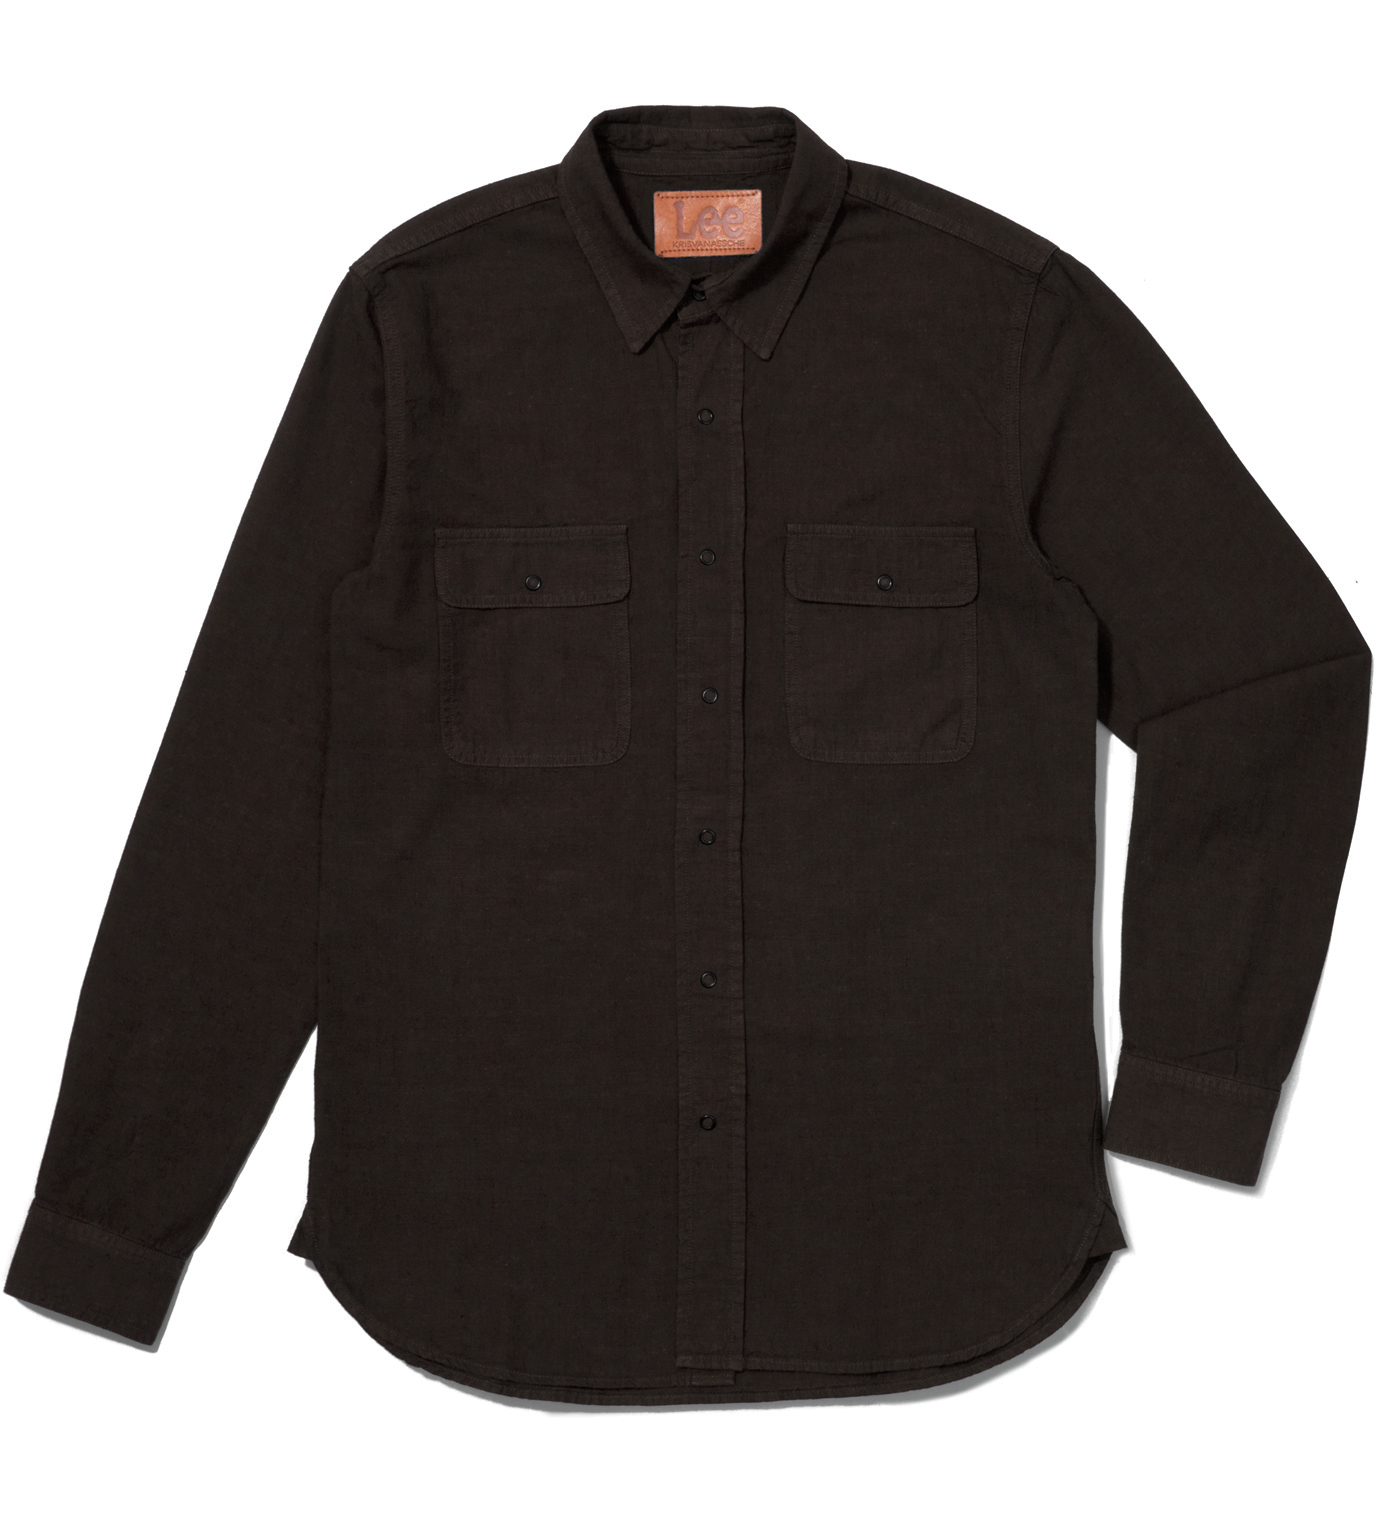 KRISVANASSCHE Lee® KRISVANASSCHE Dark Brown Denim Inspired Shirt